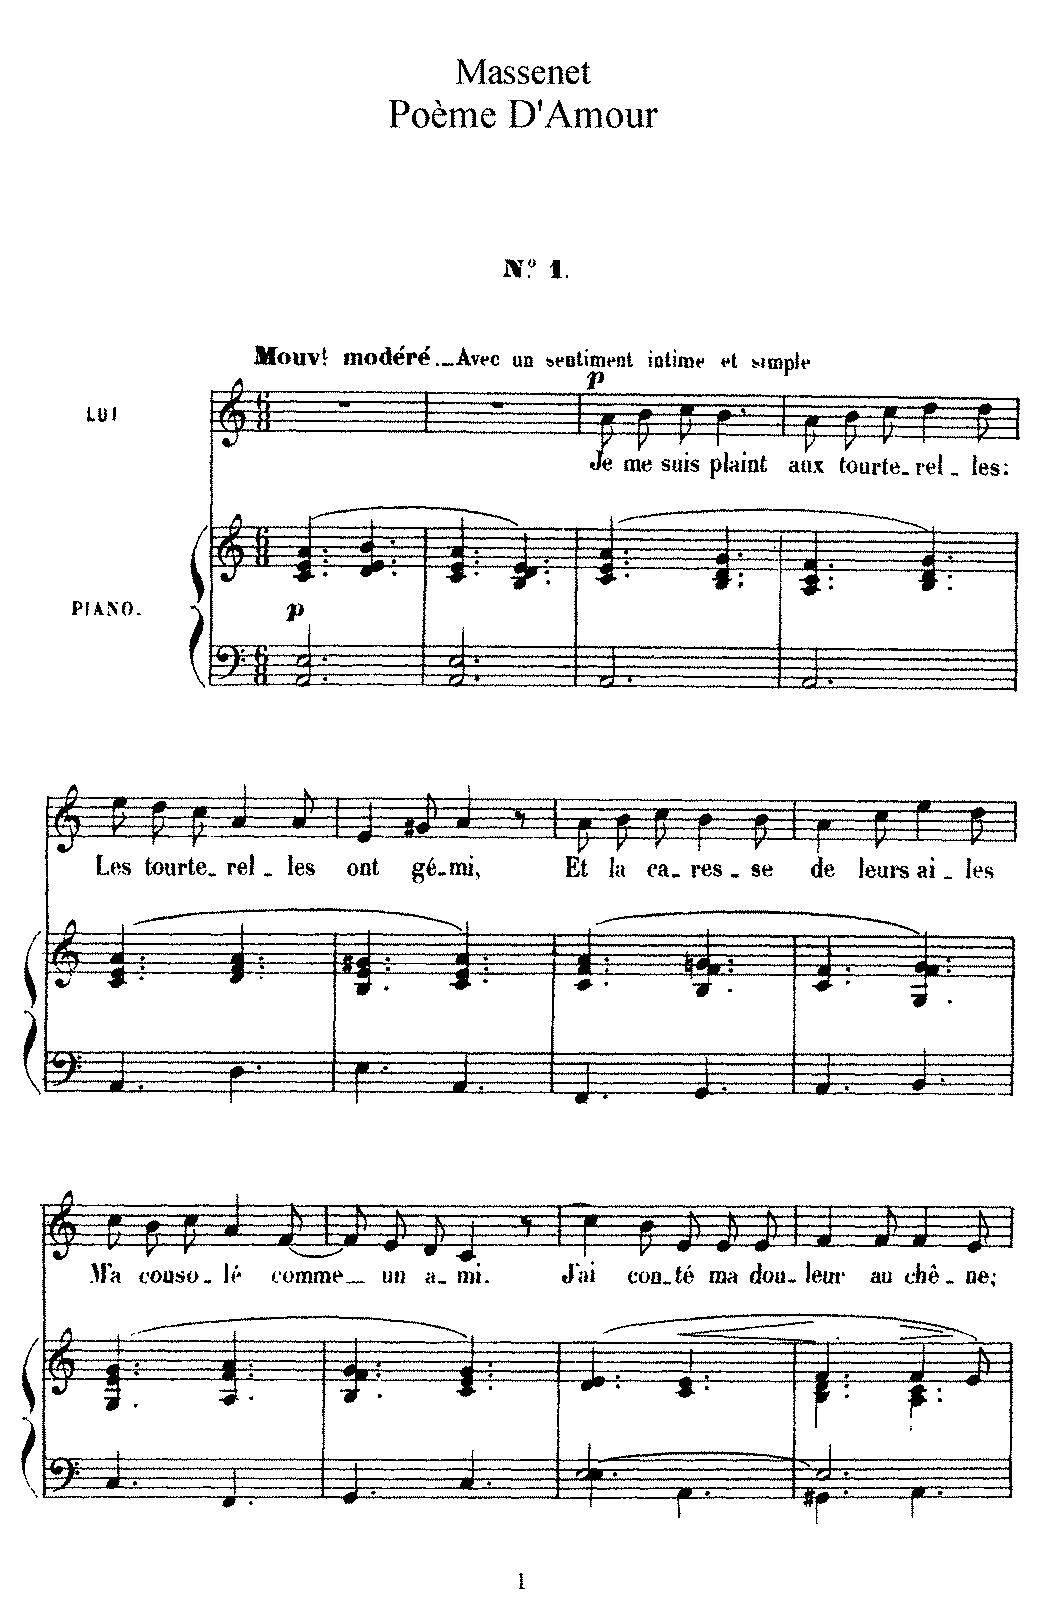 Massenet - Poëme d'amour (voice and piano).pdf